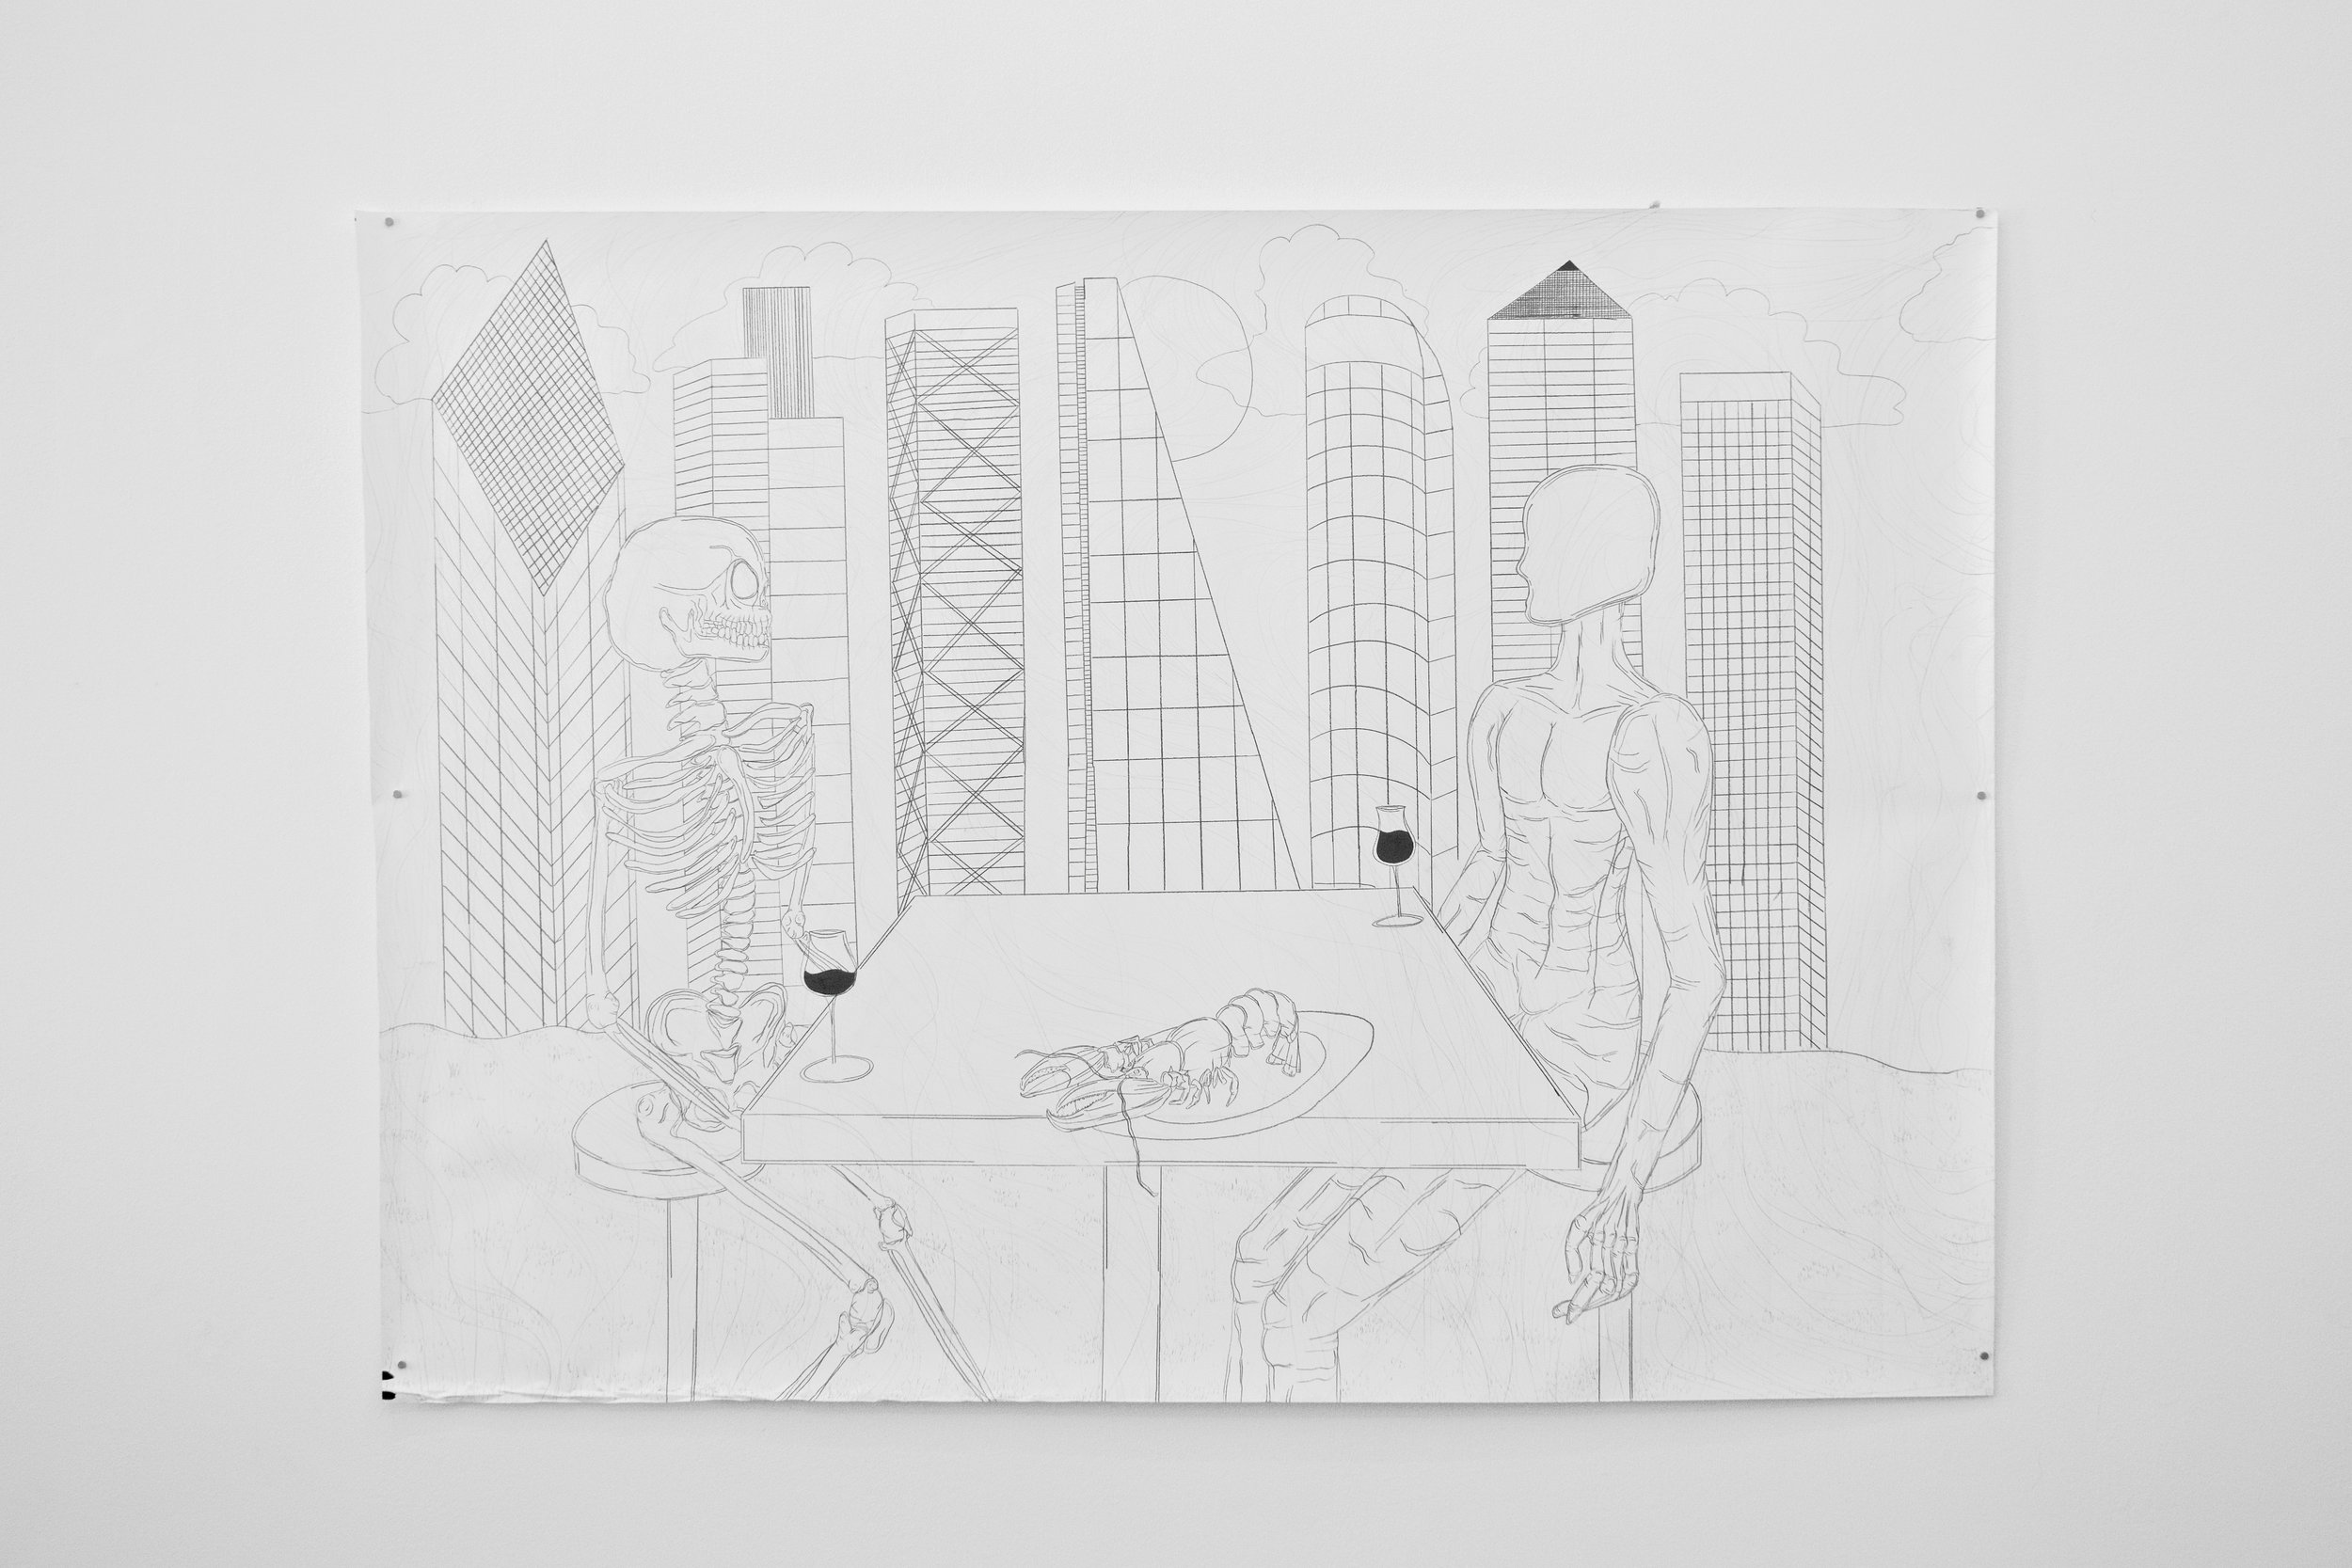 Sell Me 4 City Money , 2019 Graphite on paper 150 x 205 centimeters 59 x 80.5 inches